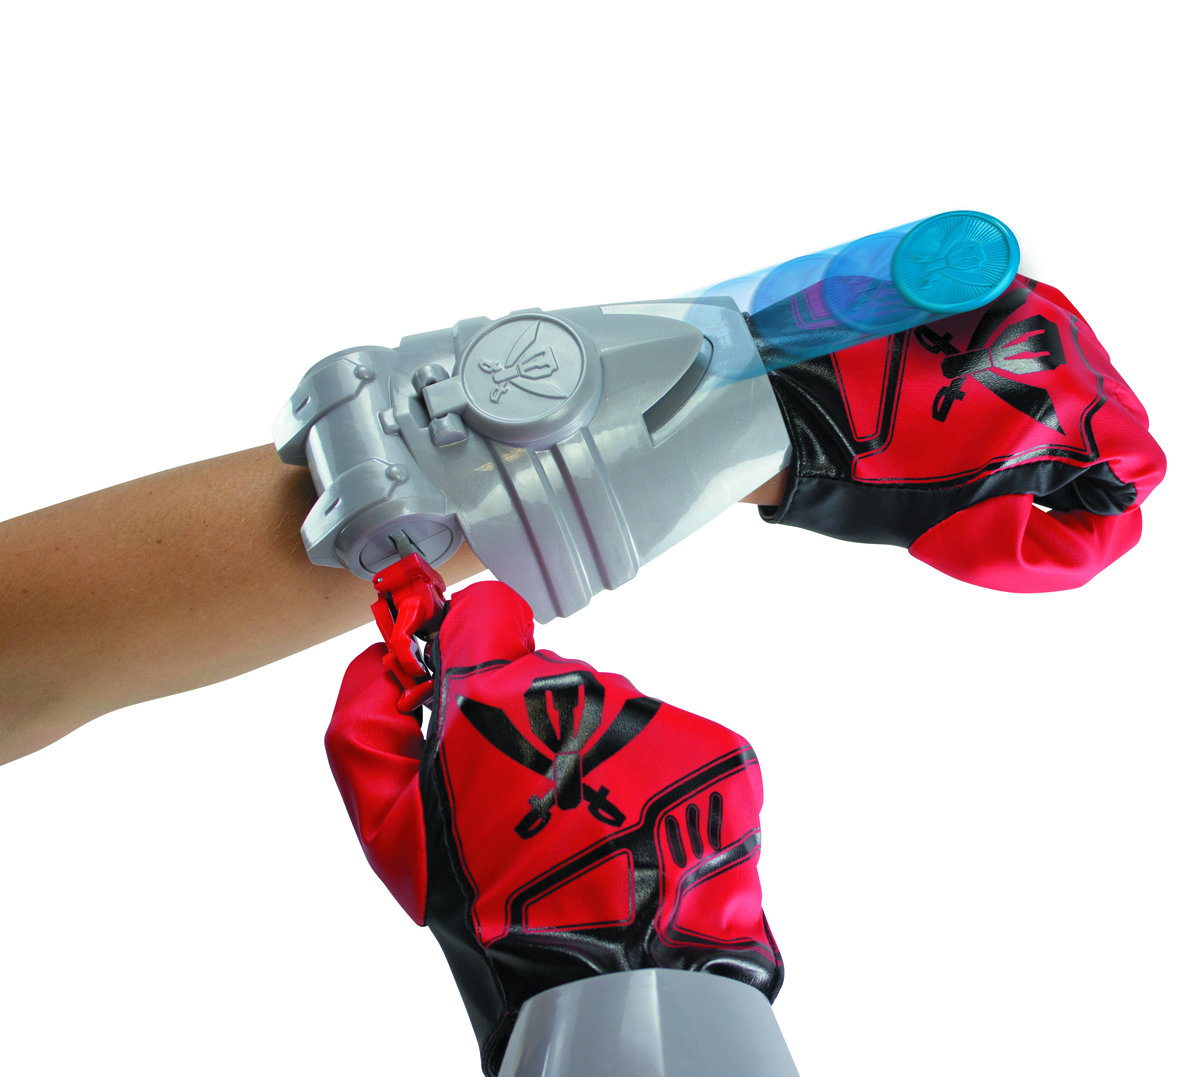 POWER RANGERS SUPER MEGAFORCE DLX HAND GEAR ASST